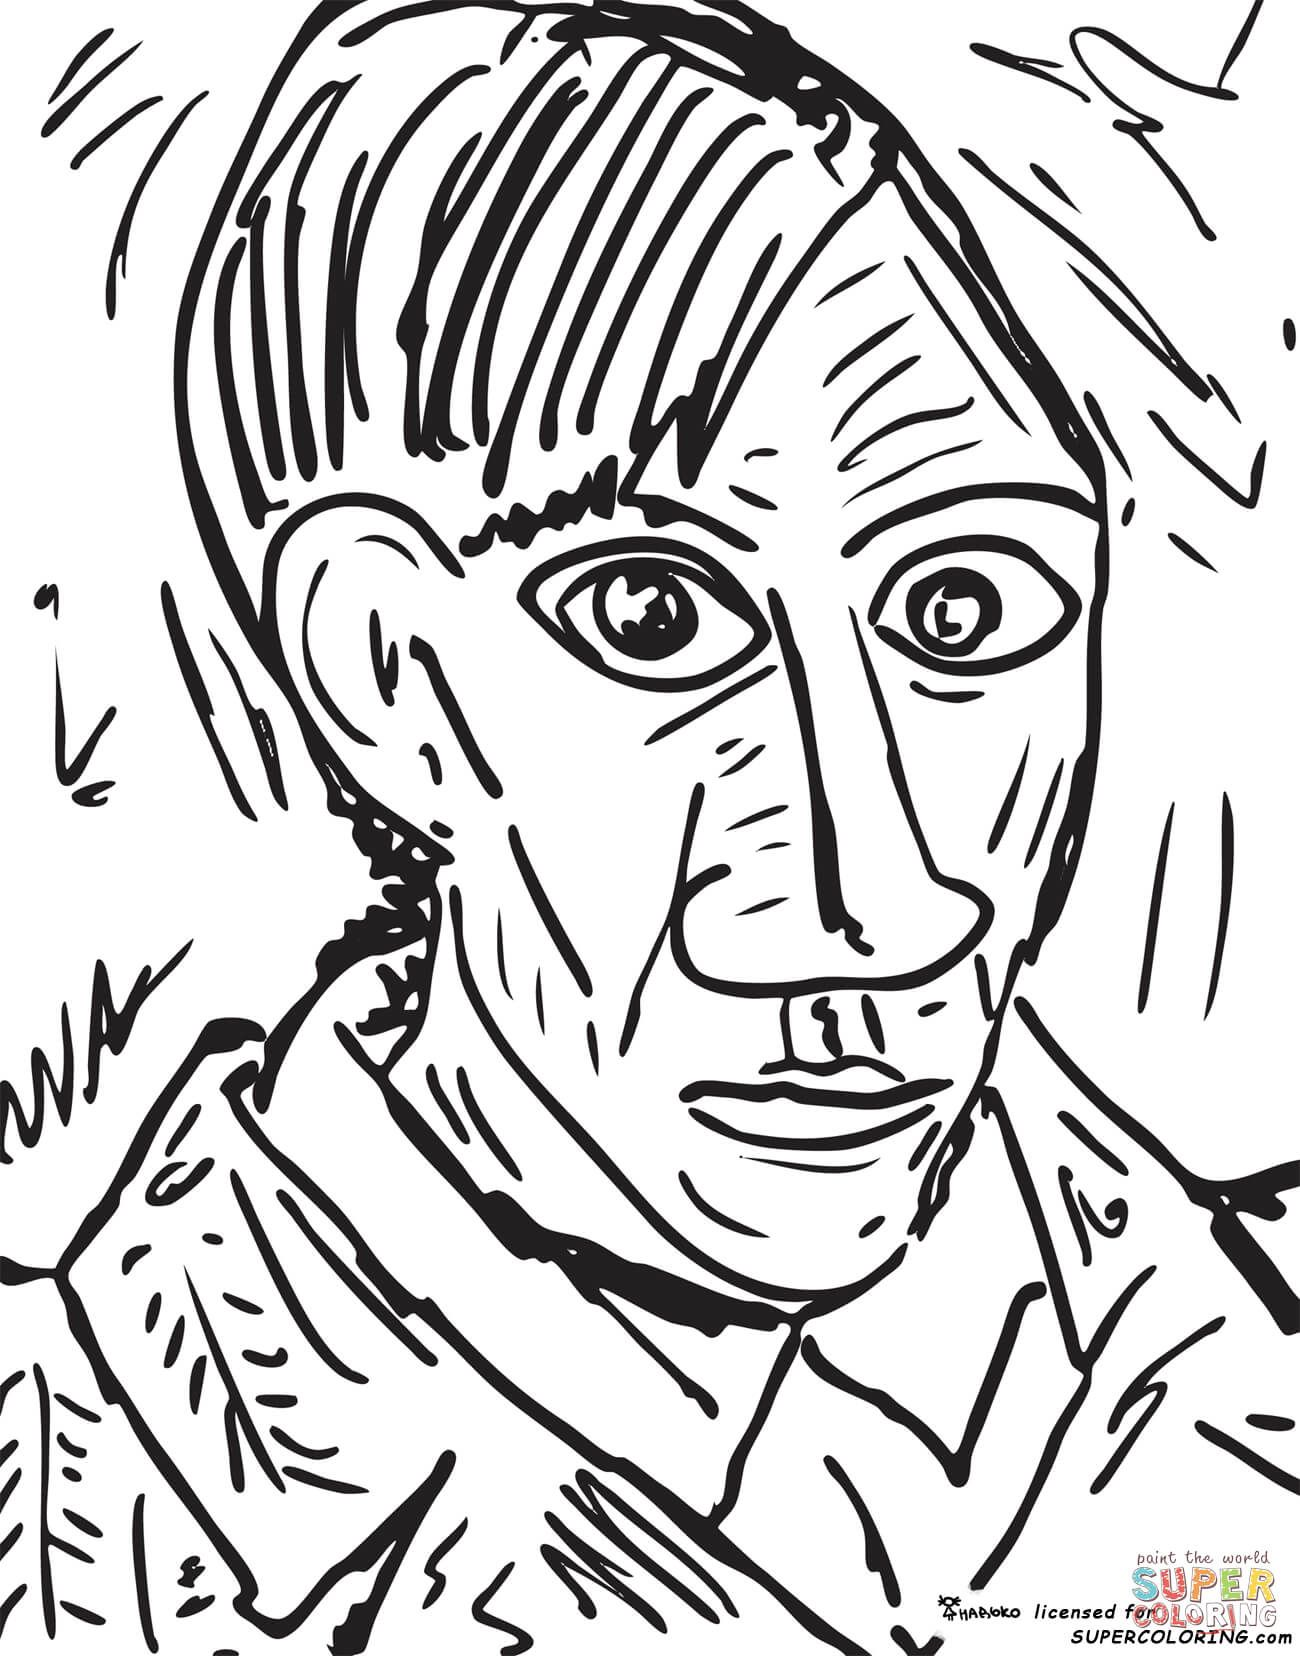 Self Portrait 1907 By Pablo Picasso Coloring Page From Pablo Picasso Category Select From 27538 Printable Craft Pablo Picasso Art Picasso Art Picasso Coloring